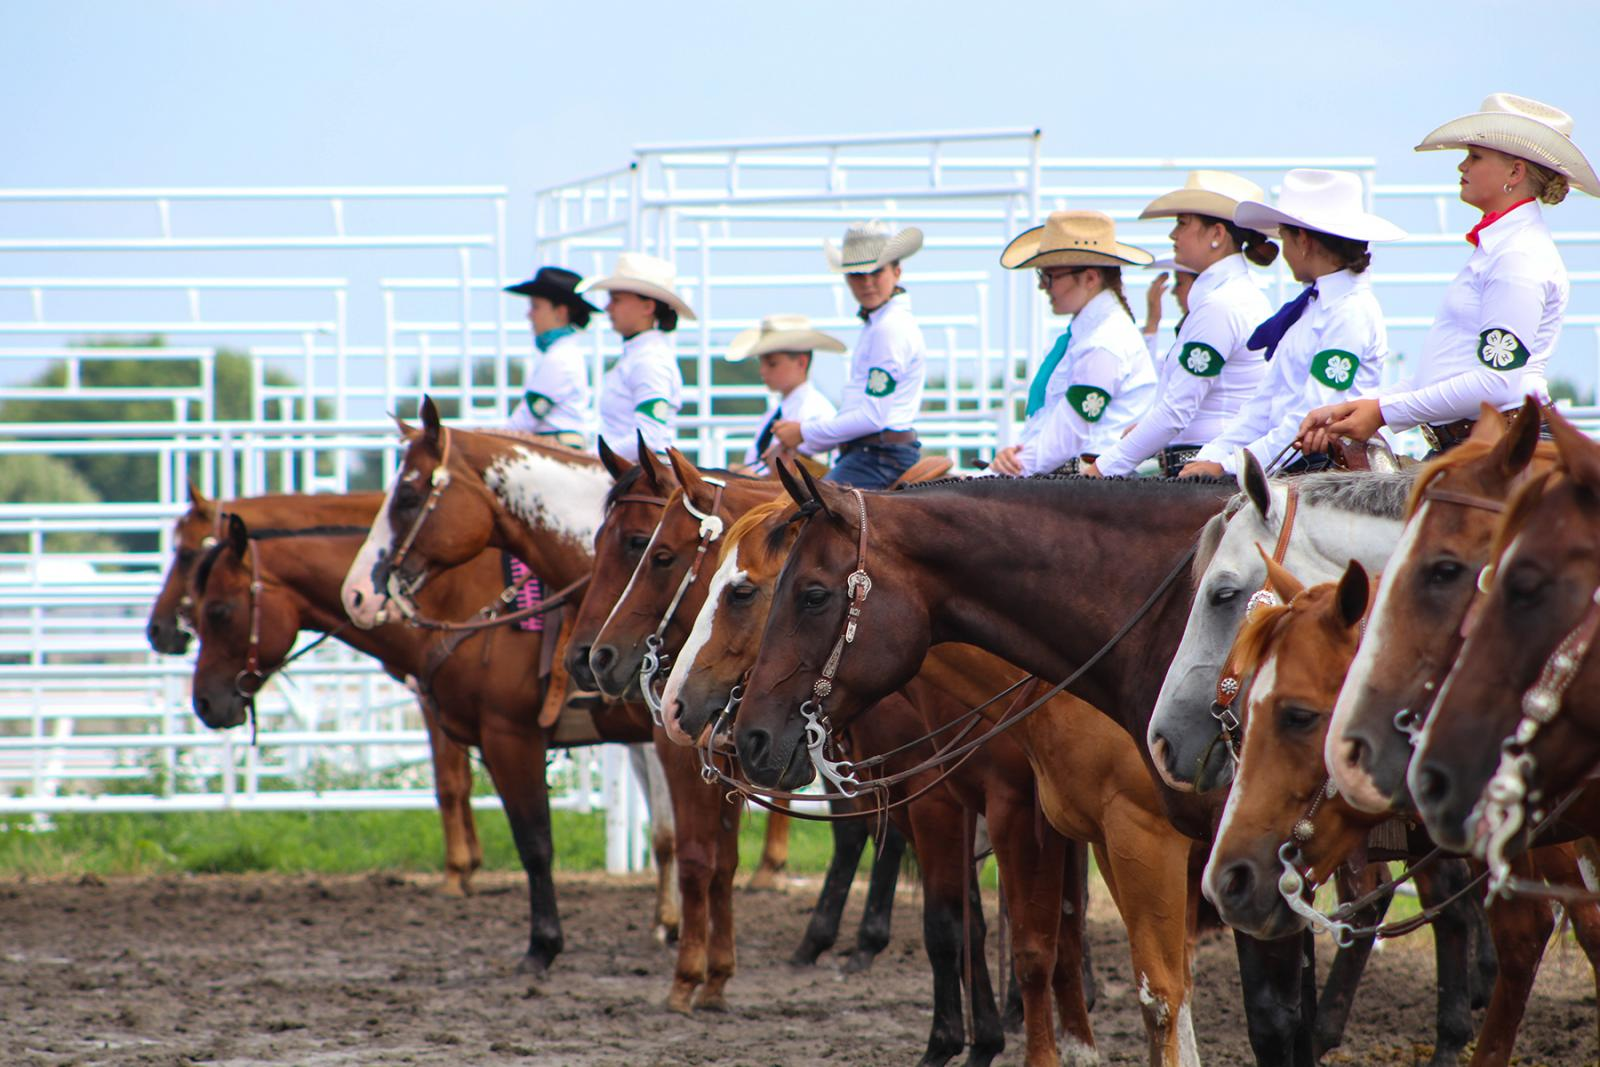 4-H members riding horses in showring